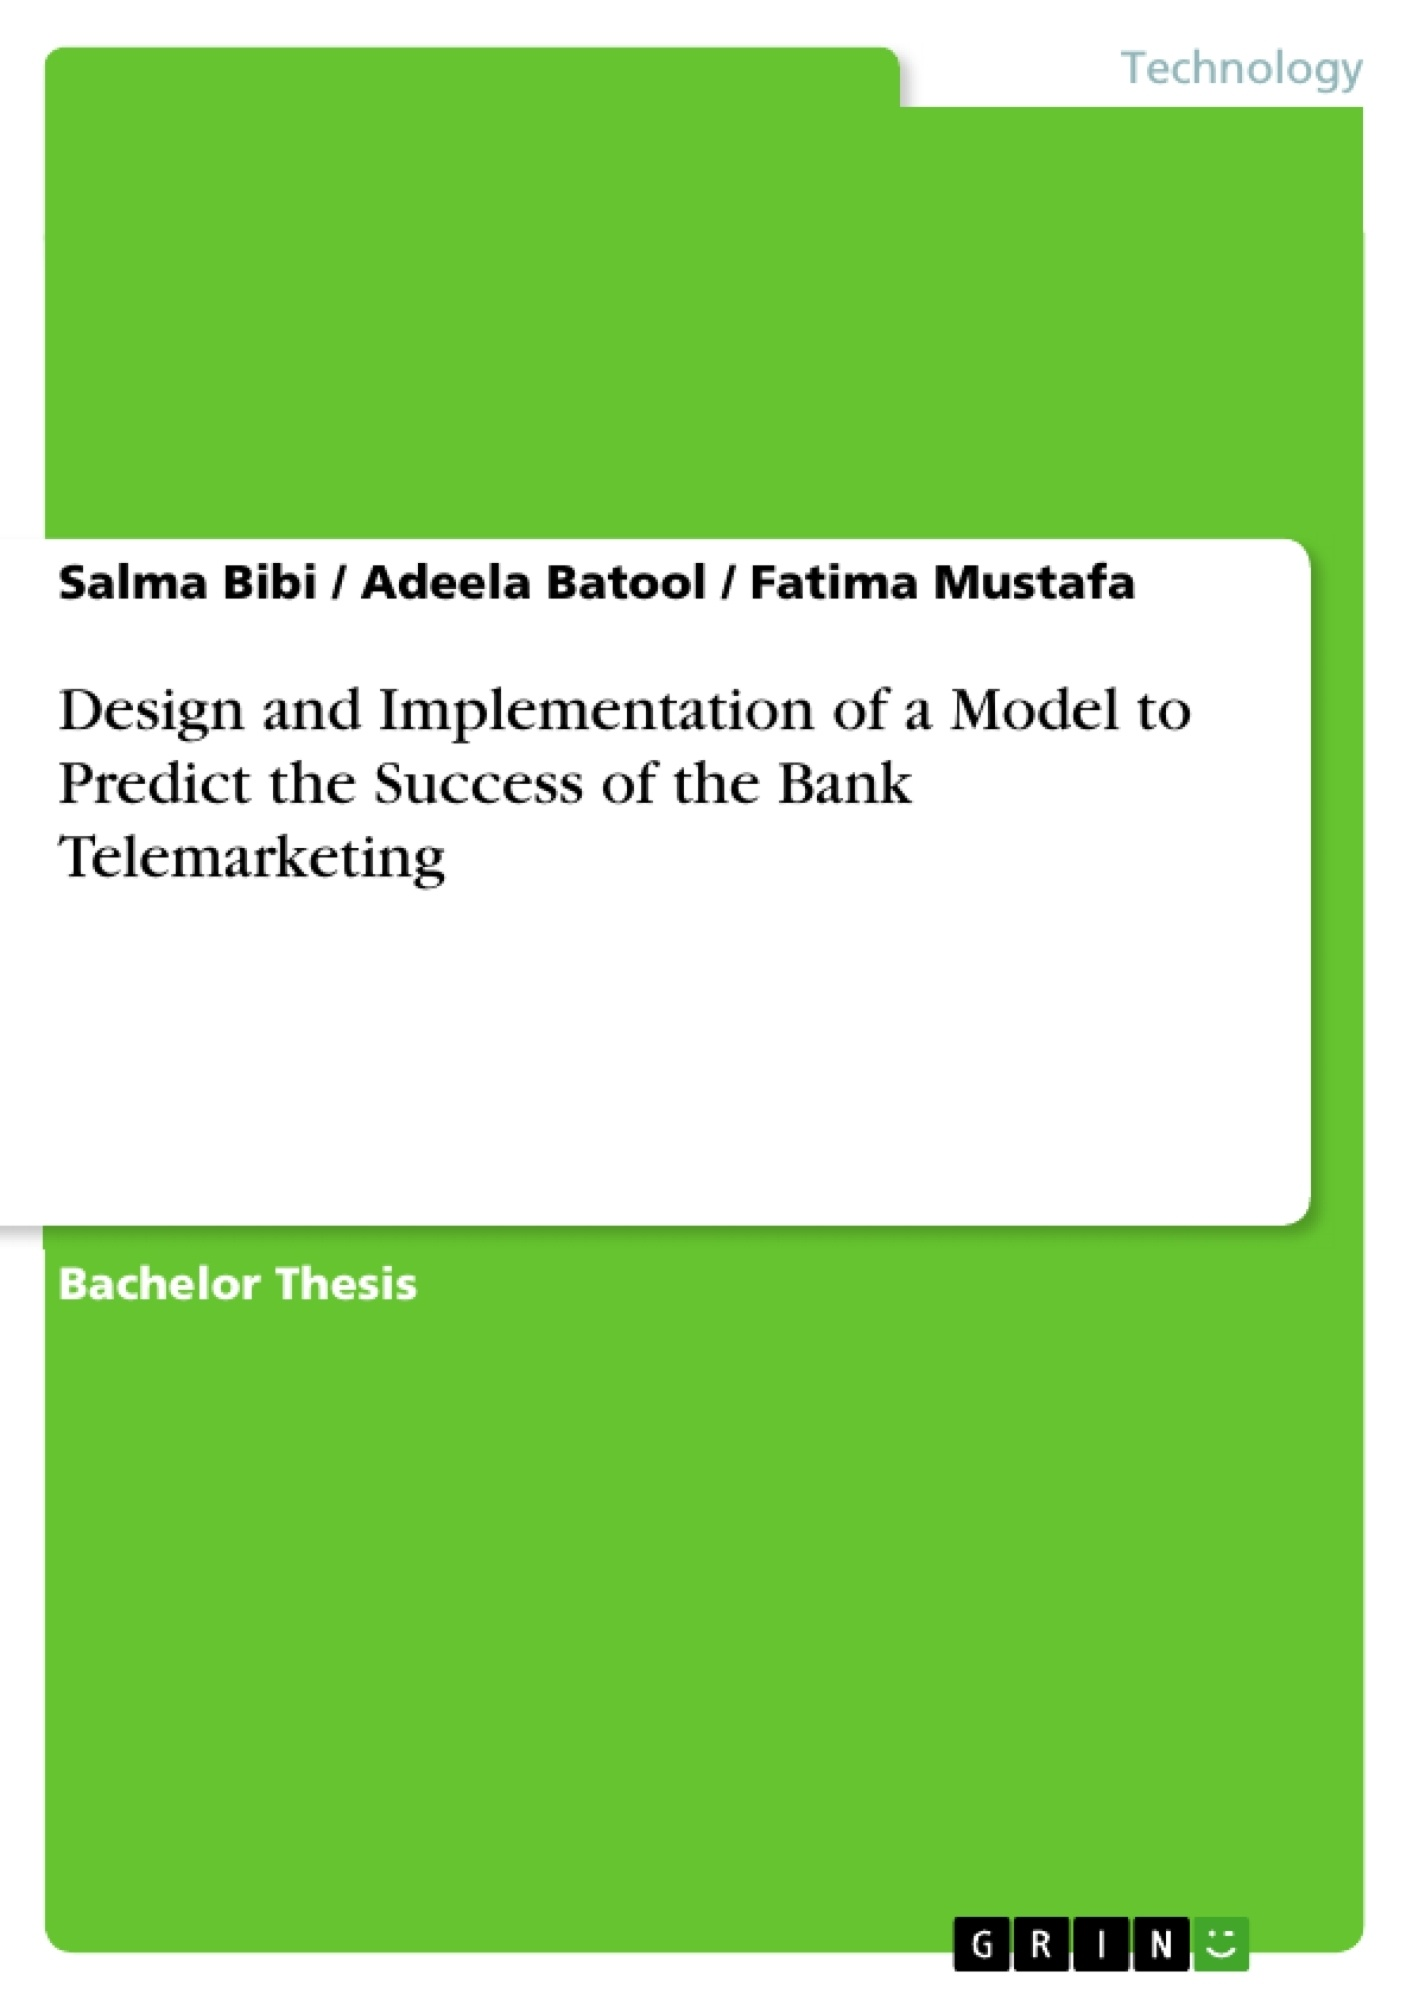 Title: Design and Implementation of a Model to Predict the Success of the Bank Telemarketing